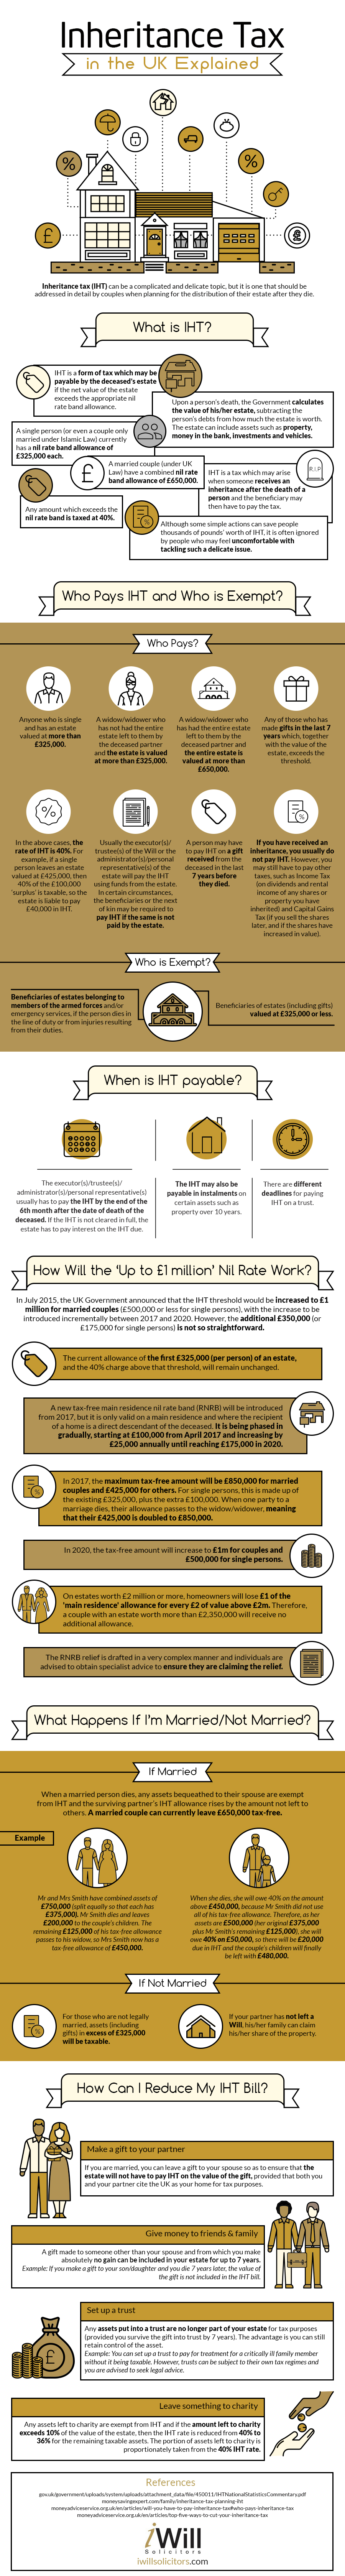 Inheritance-Tax-in-the-UK-Infographic